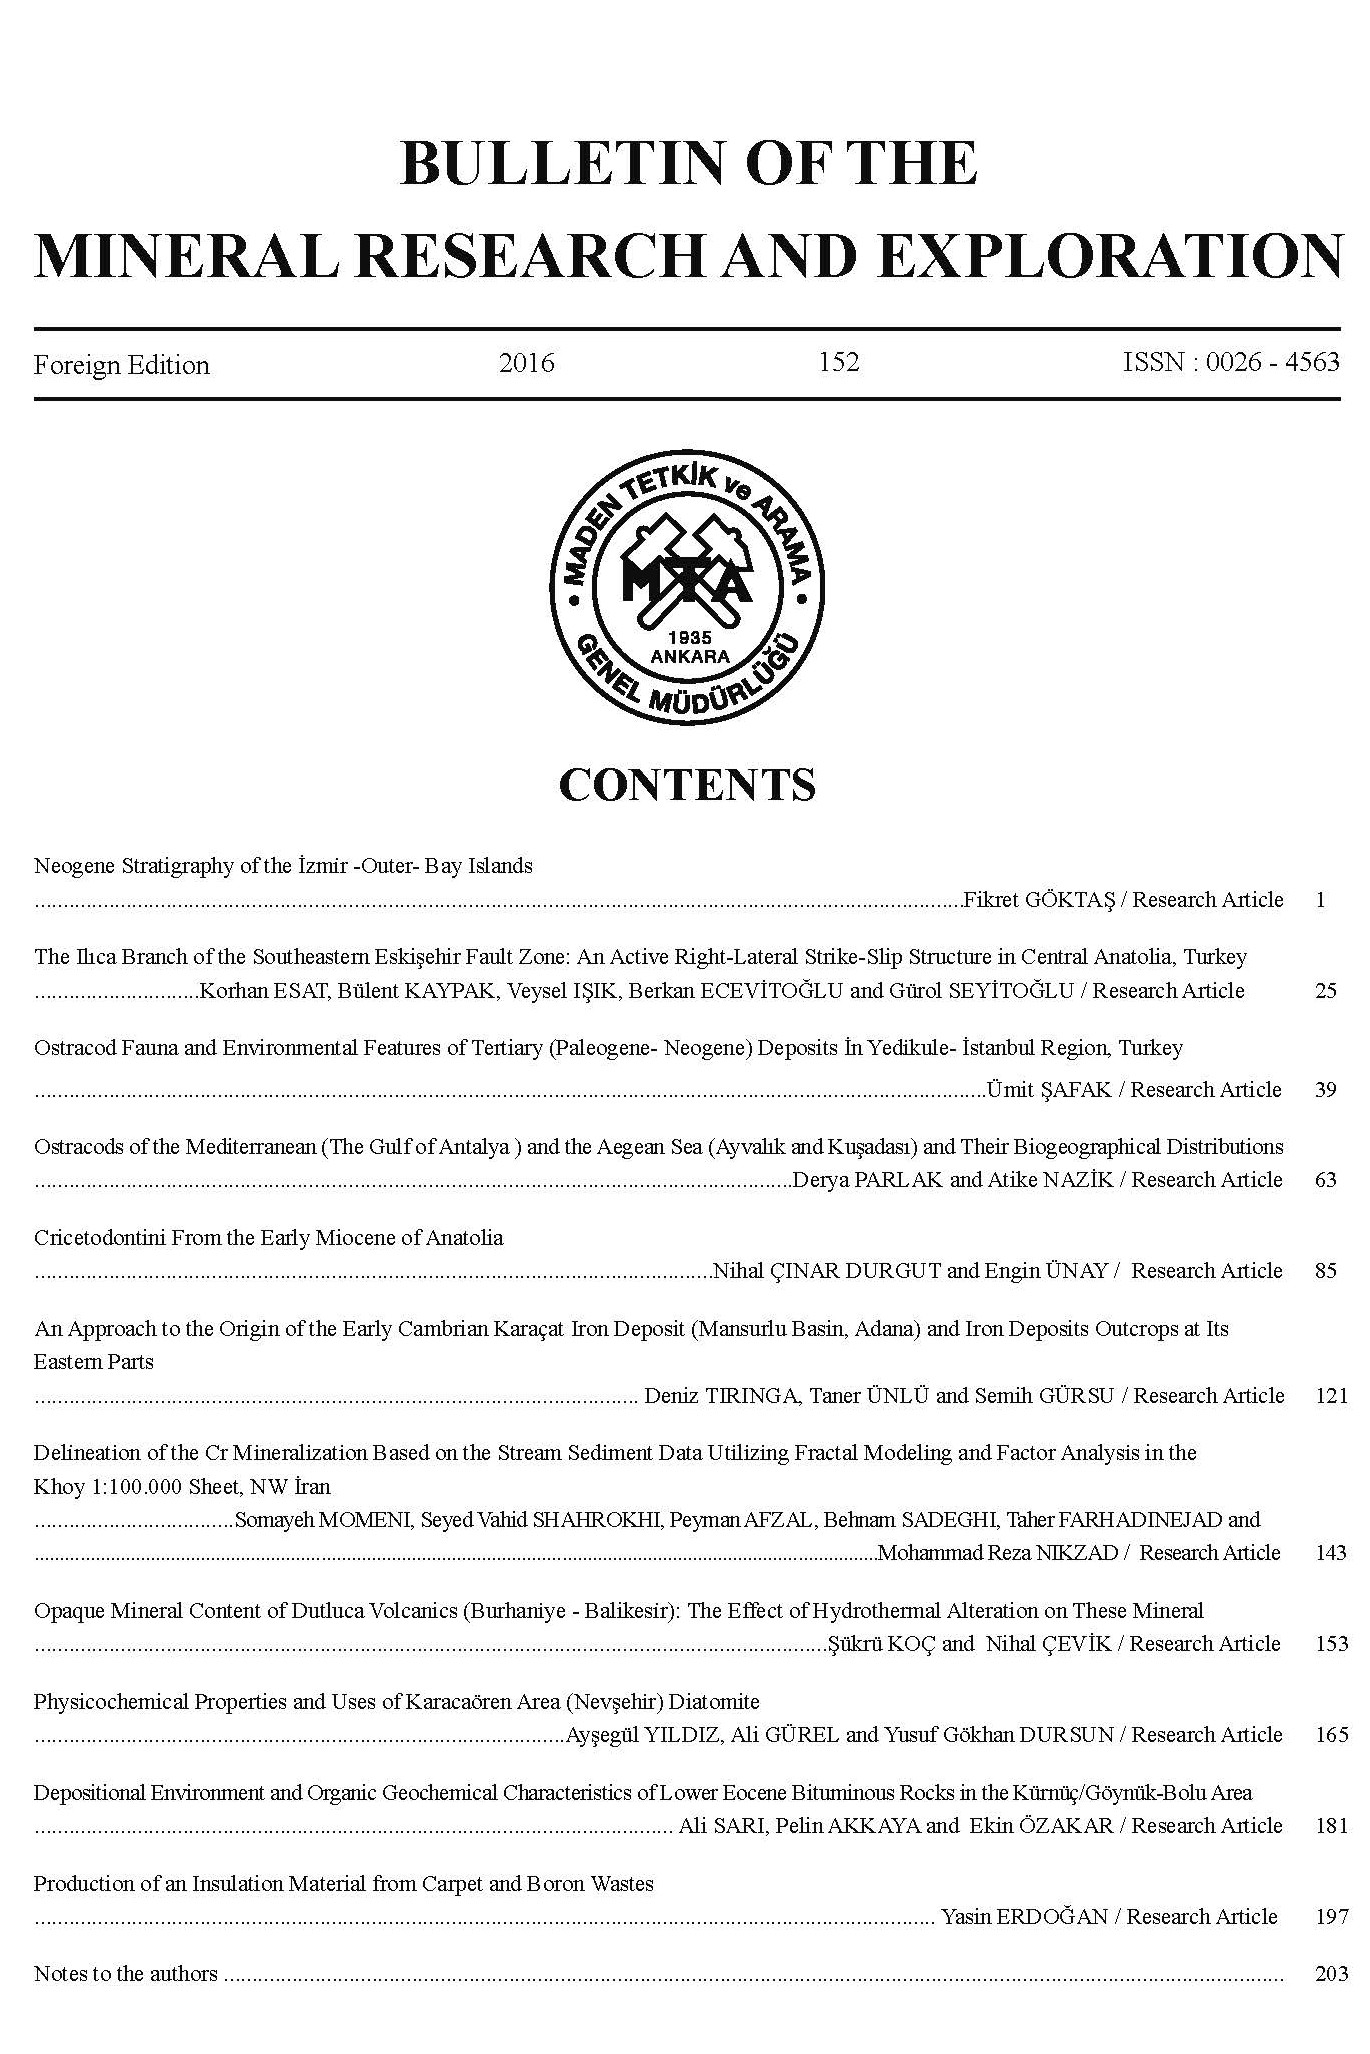 Bulletin  of the Mineral Research and Exploration